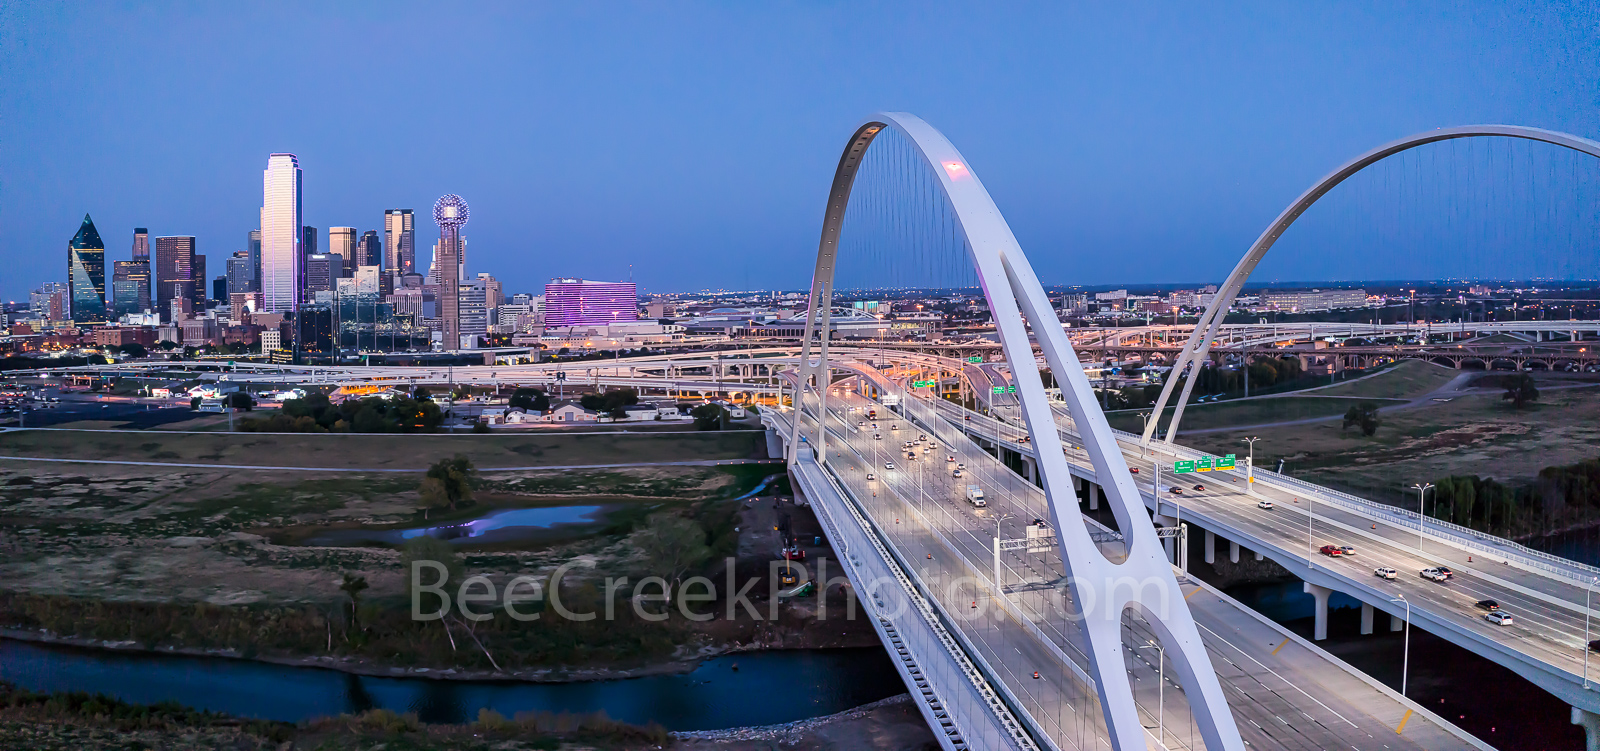 Dallas skyline, pink, panorama, Margaret McDermott Bridge, downtown, twilight, blue hour, Susan B Komen, Race for the Cure, Bank of America, Reunion Tower, Omni, steel, bridge, arches, Trinity River,,, photo